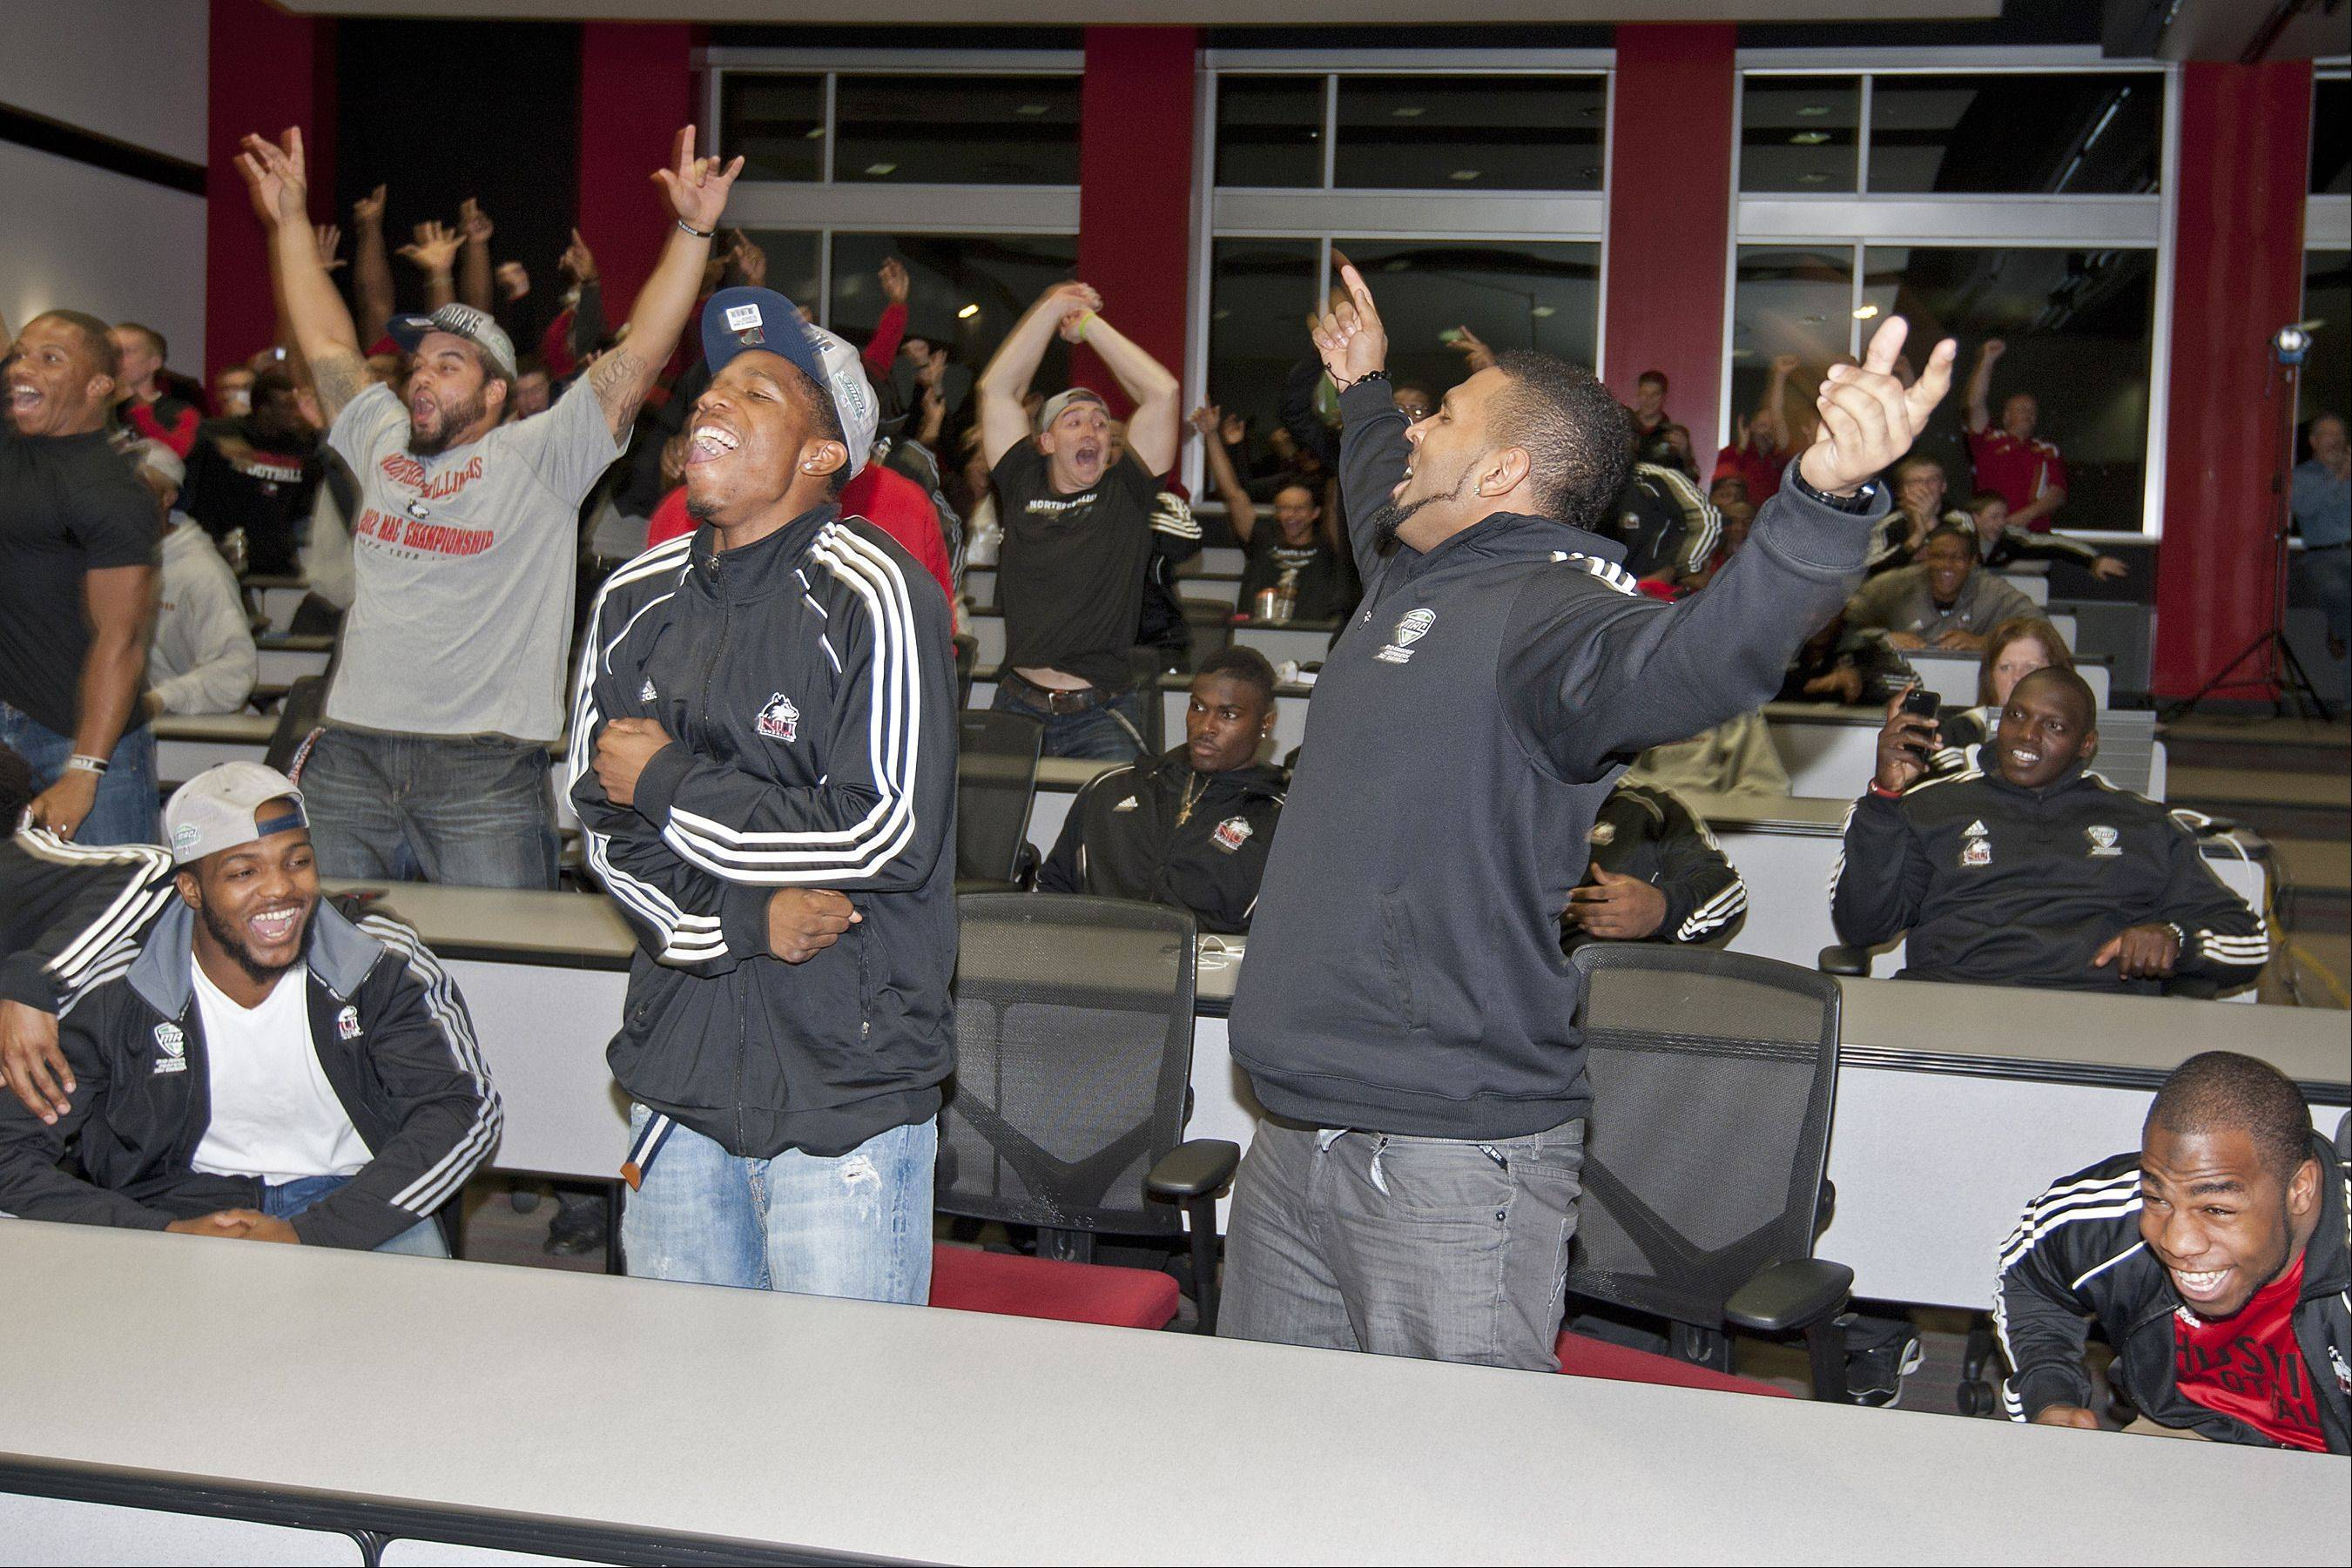 Football team members react on Sunday night during a press conference in DeKalb as the NIU Huskies learned of their Orange Bowl berth.